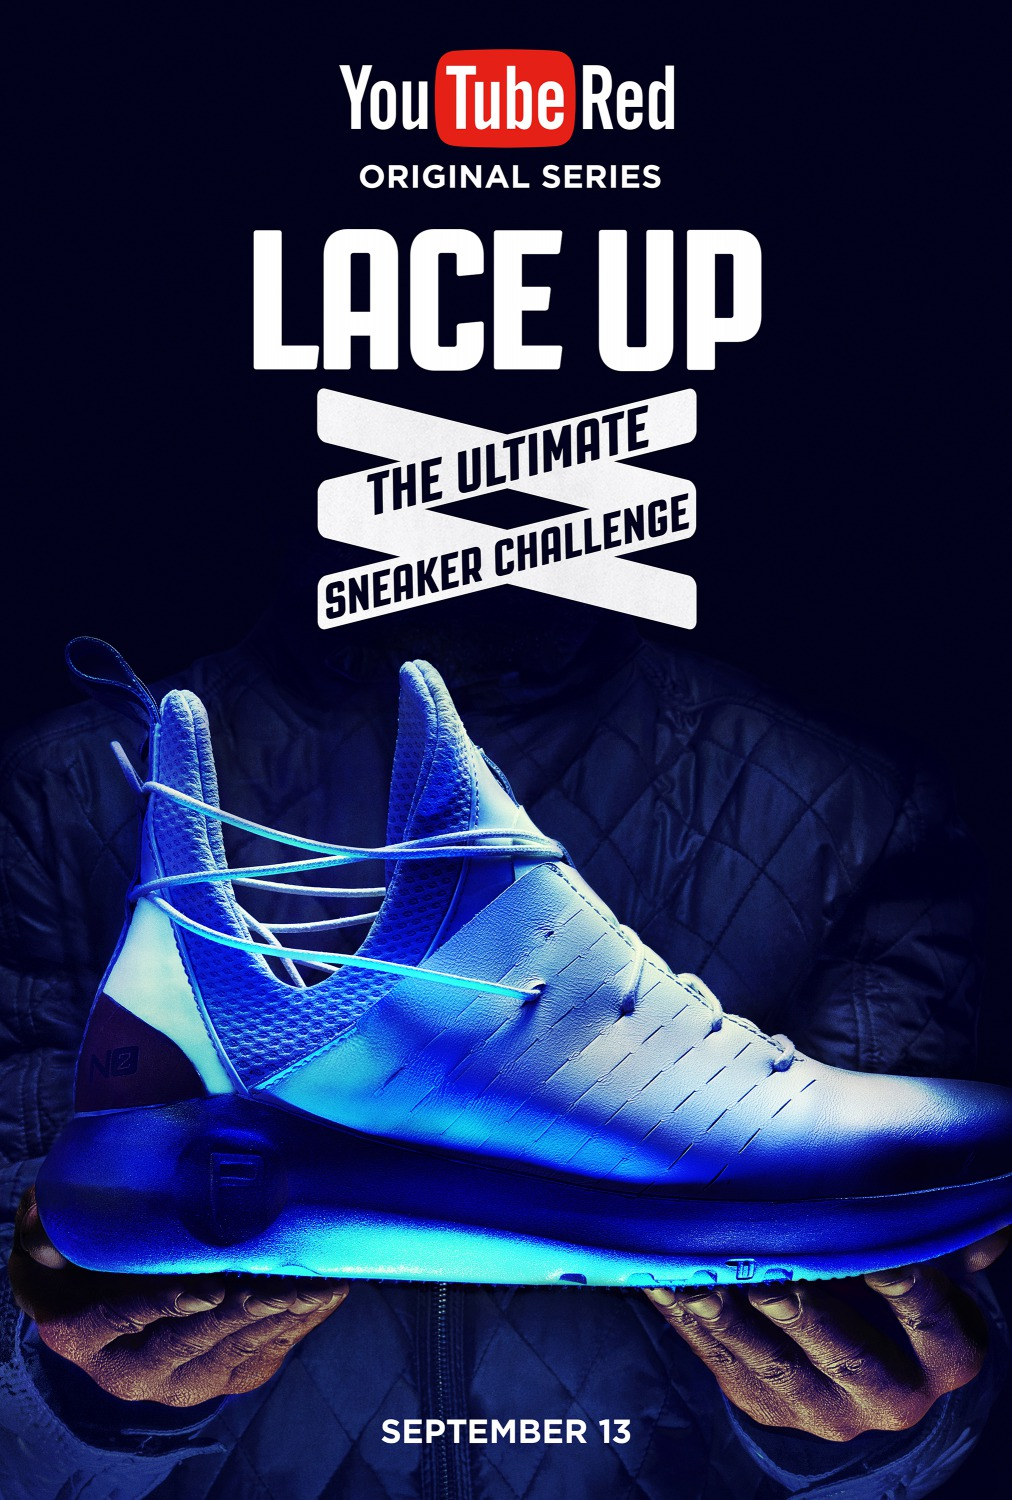 Youtube red'S lace up - Casting Editor, 2017